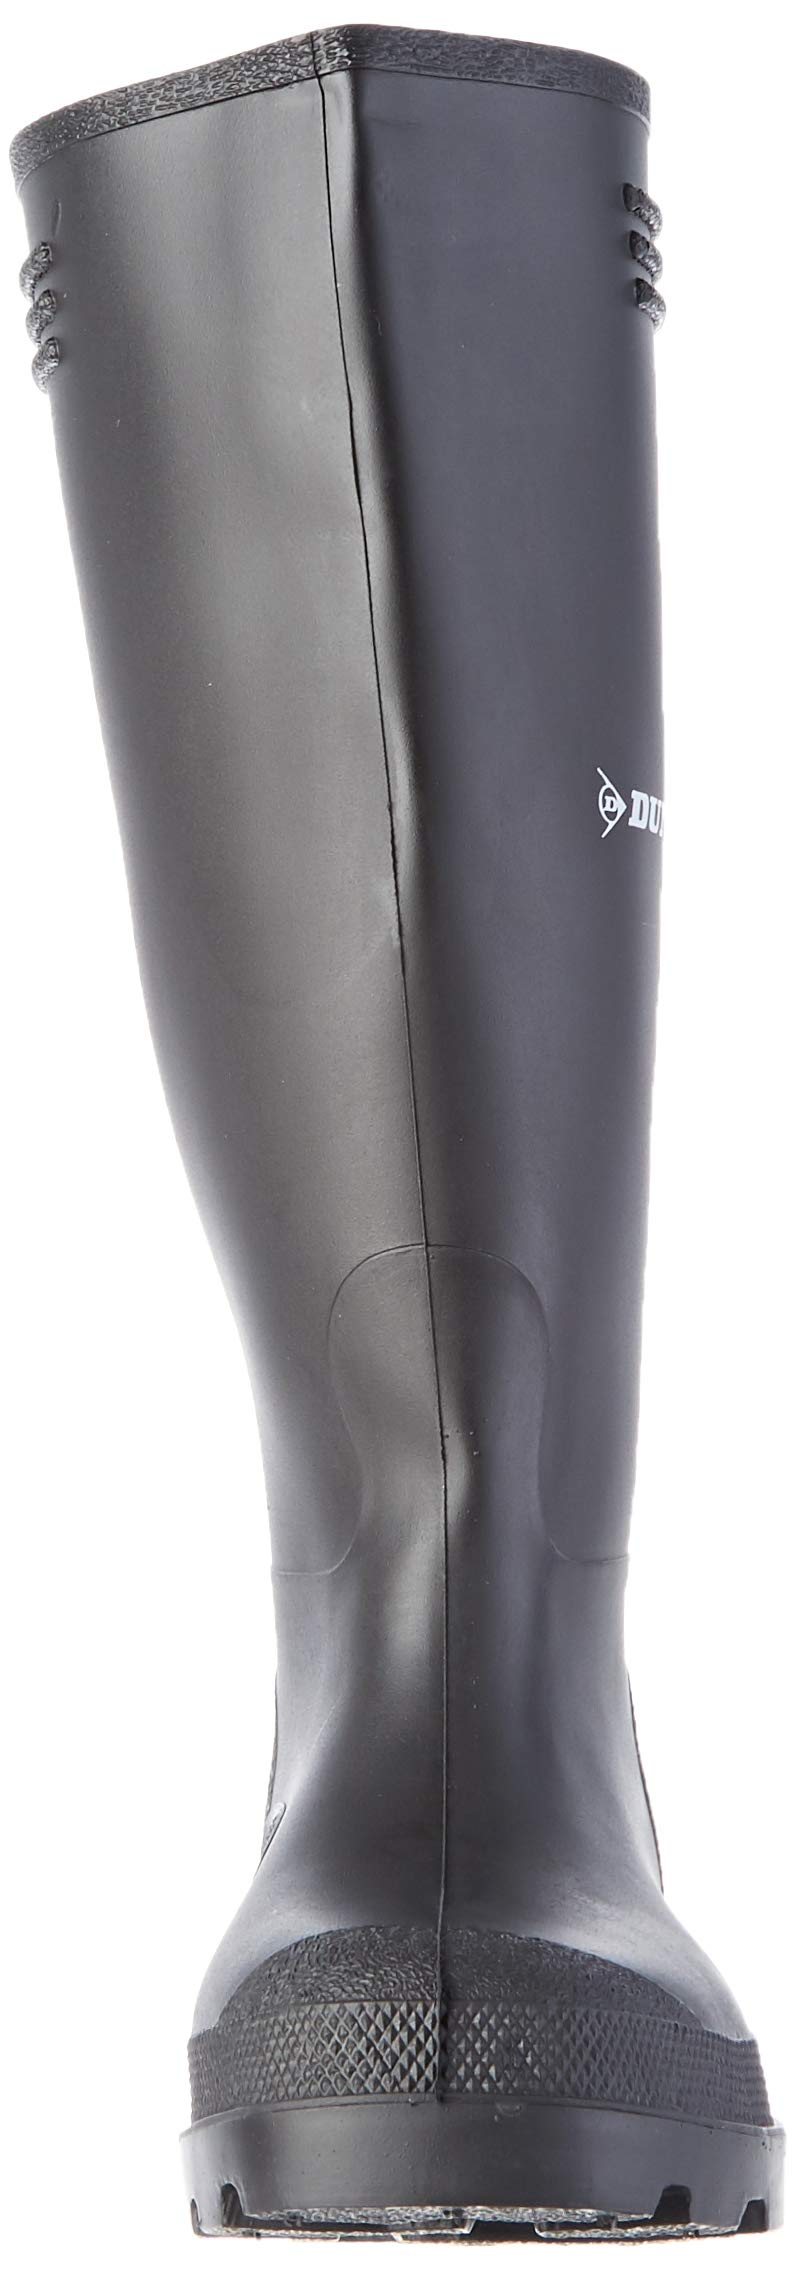 Dunlop Pricemastor PVC Welly / Mens Boots (10 UK) (Black) 4